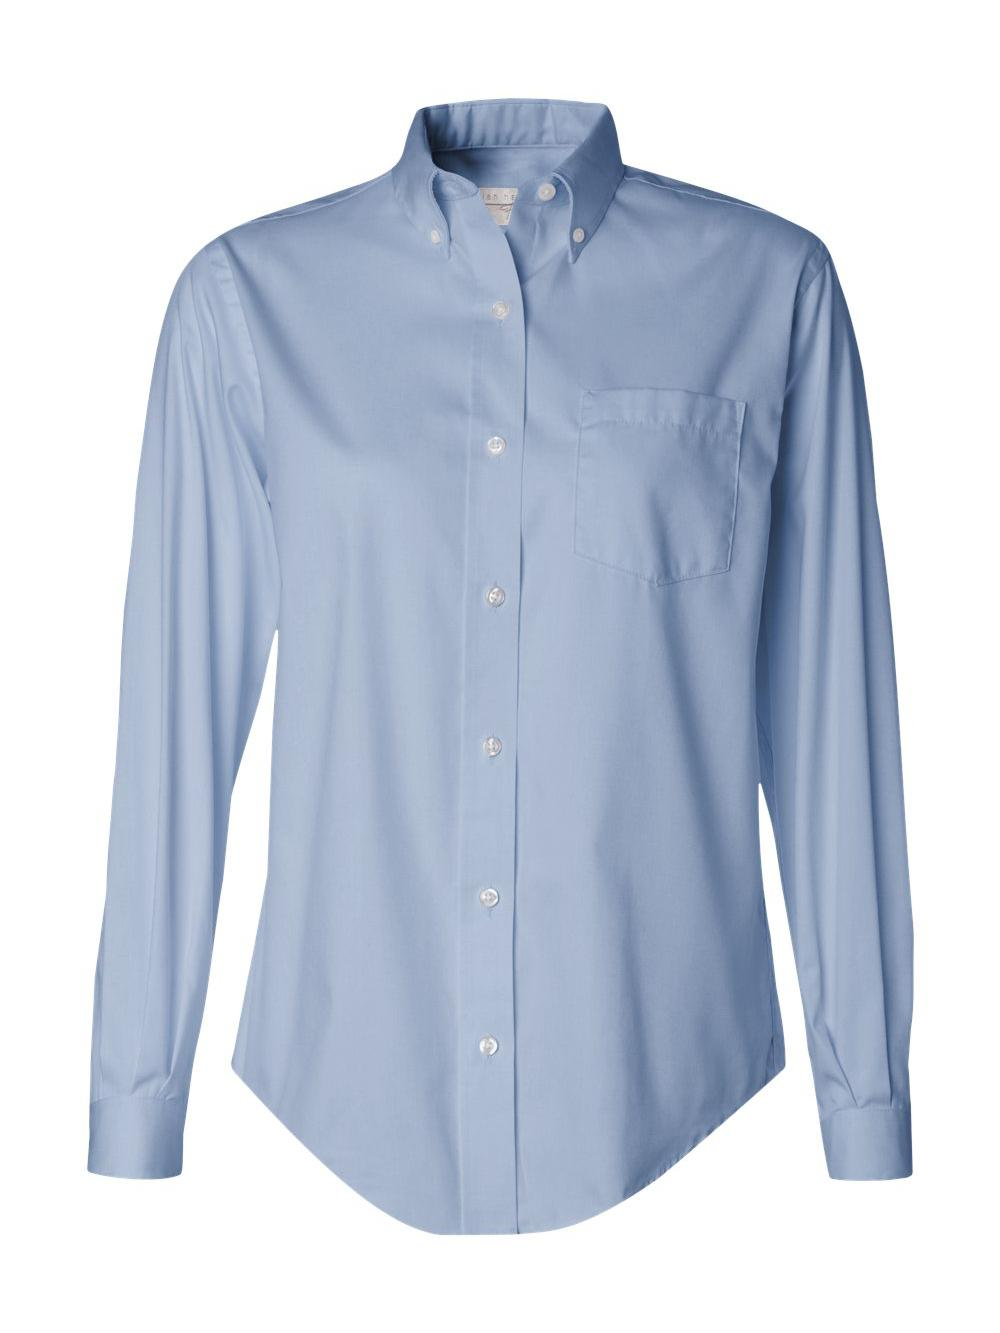 Van-Heusen-Women-039-s-Pinpoint-Oxford-Shirt-13V0110 thumbnail 3